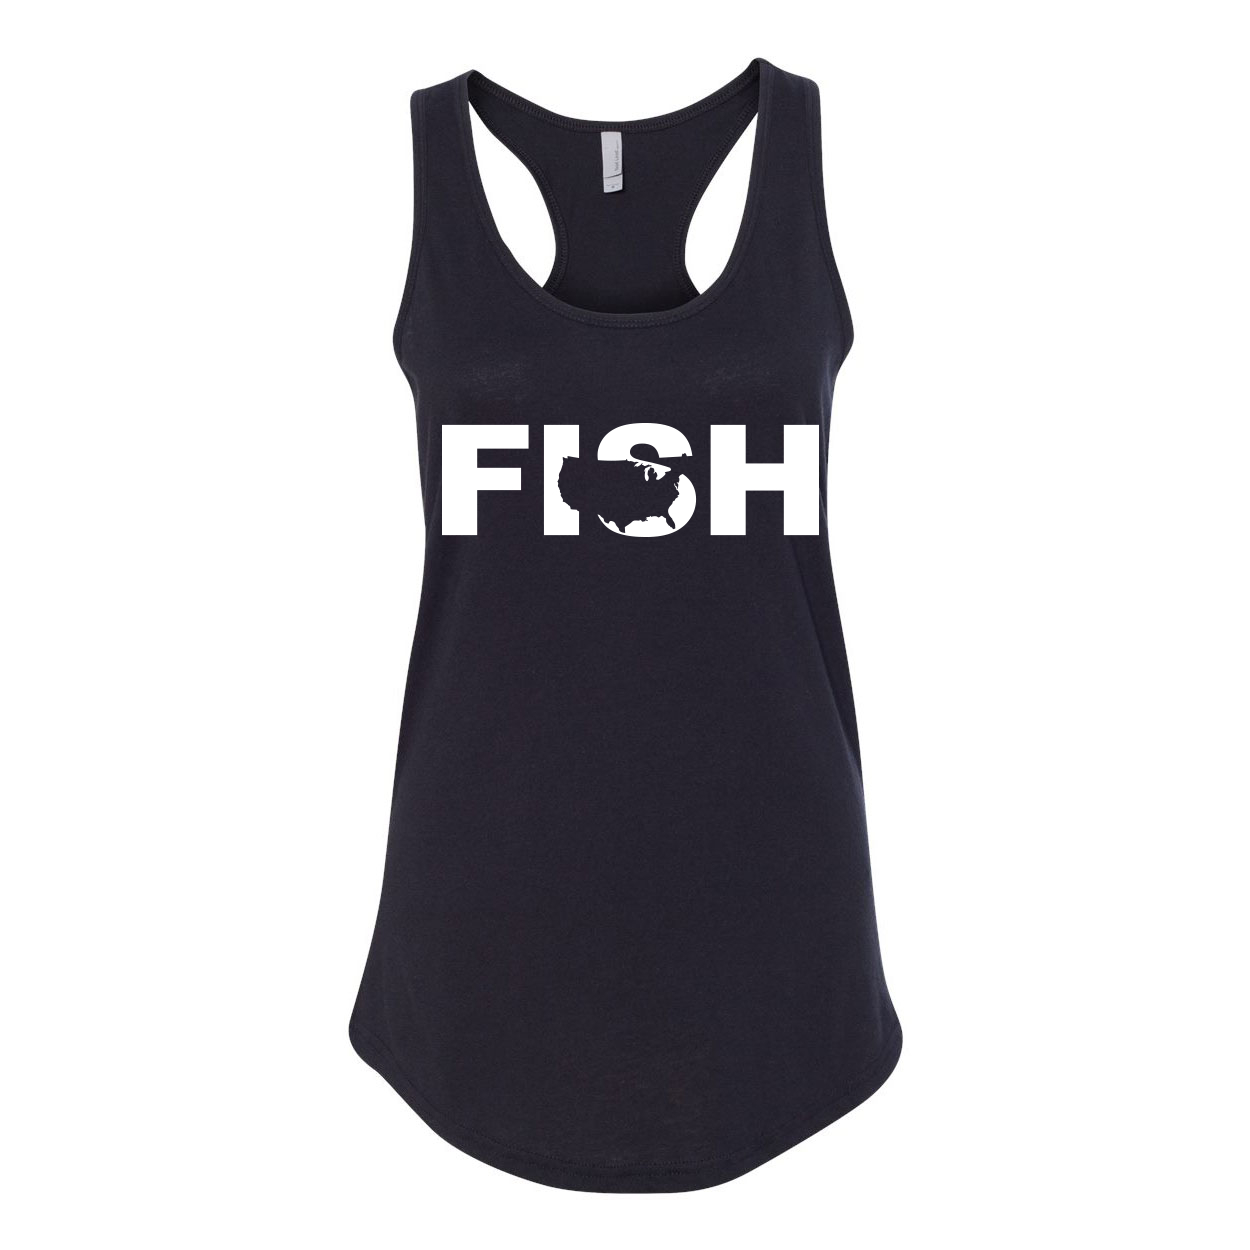 Fish United States Classic Women's Racerback Tank Top Black (White Logo)